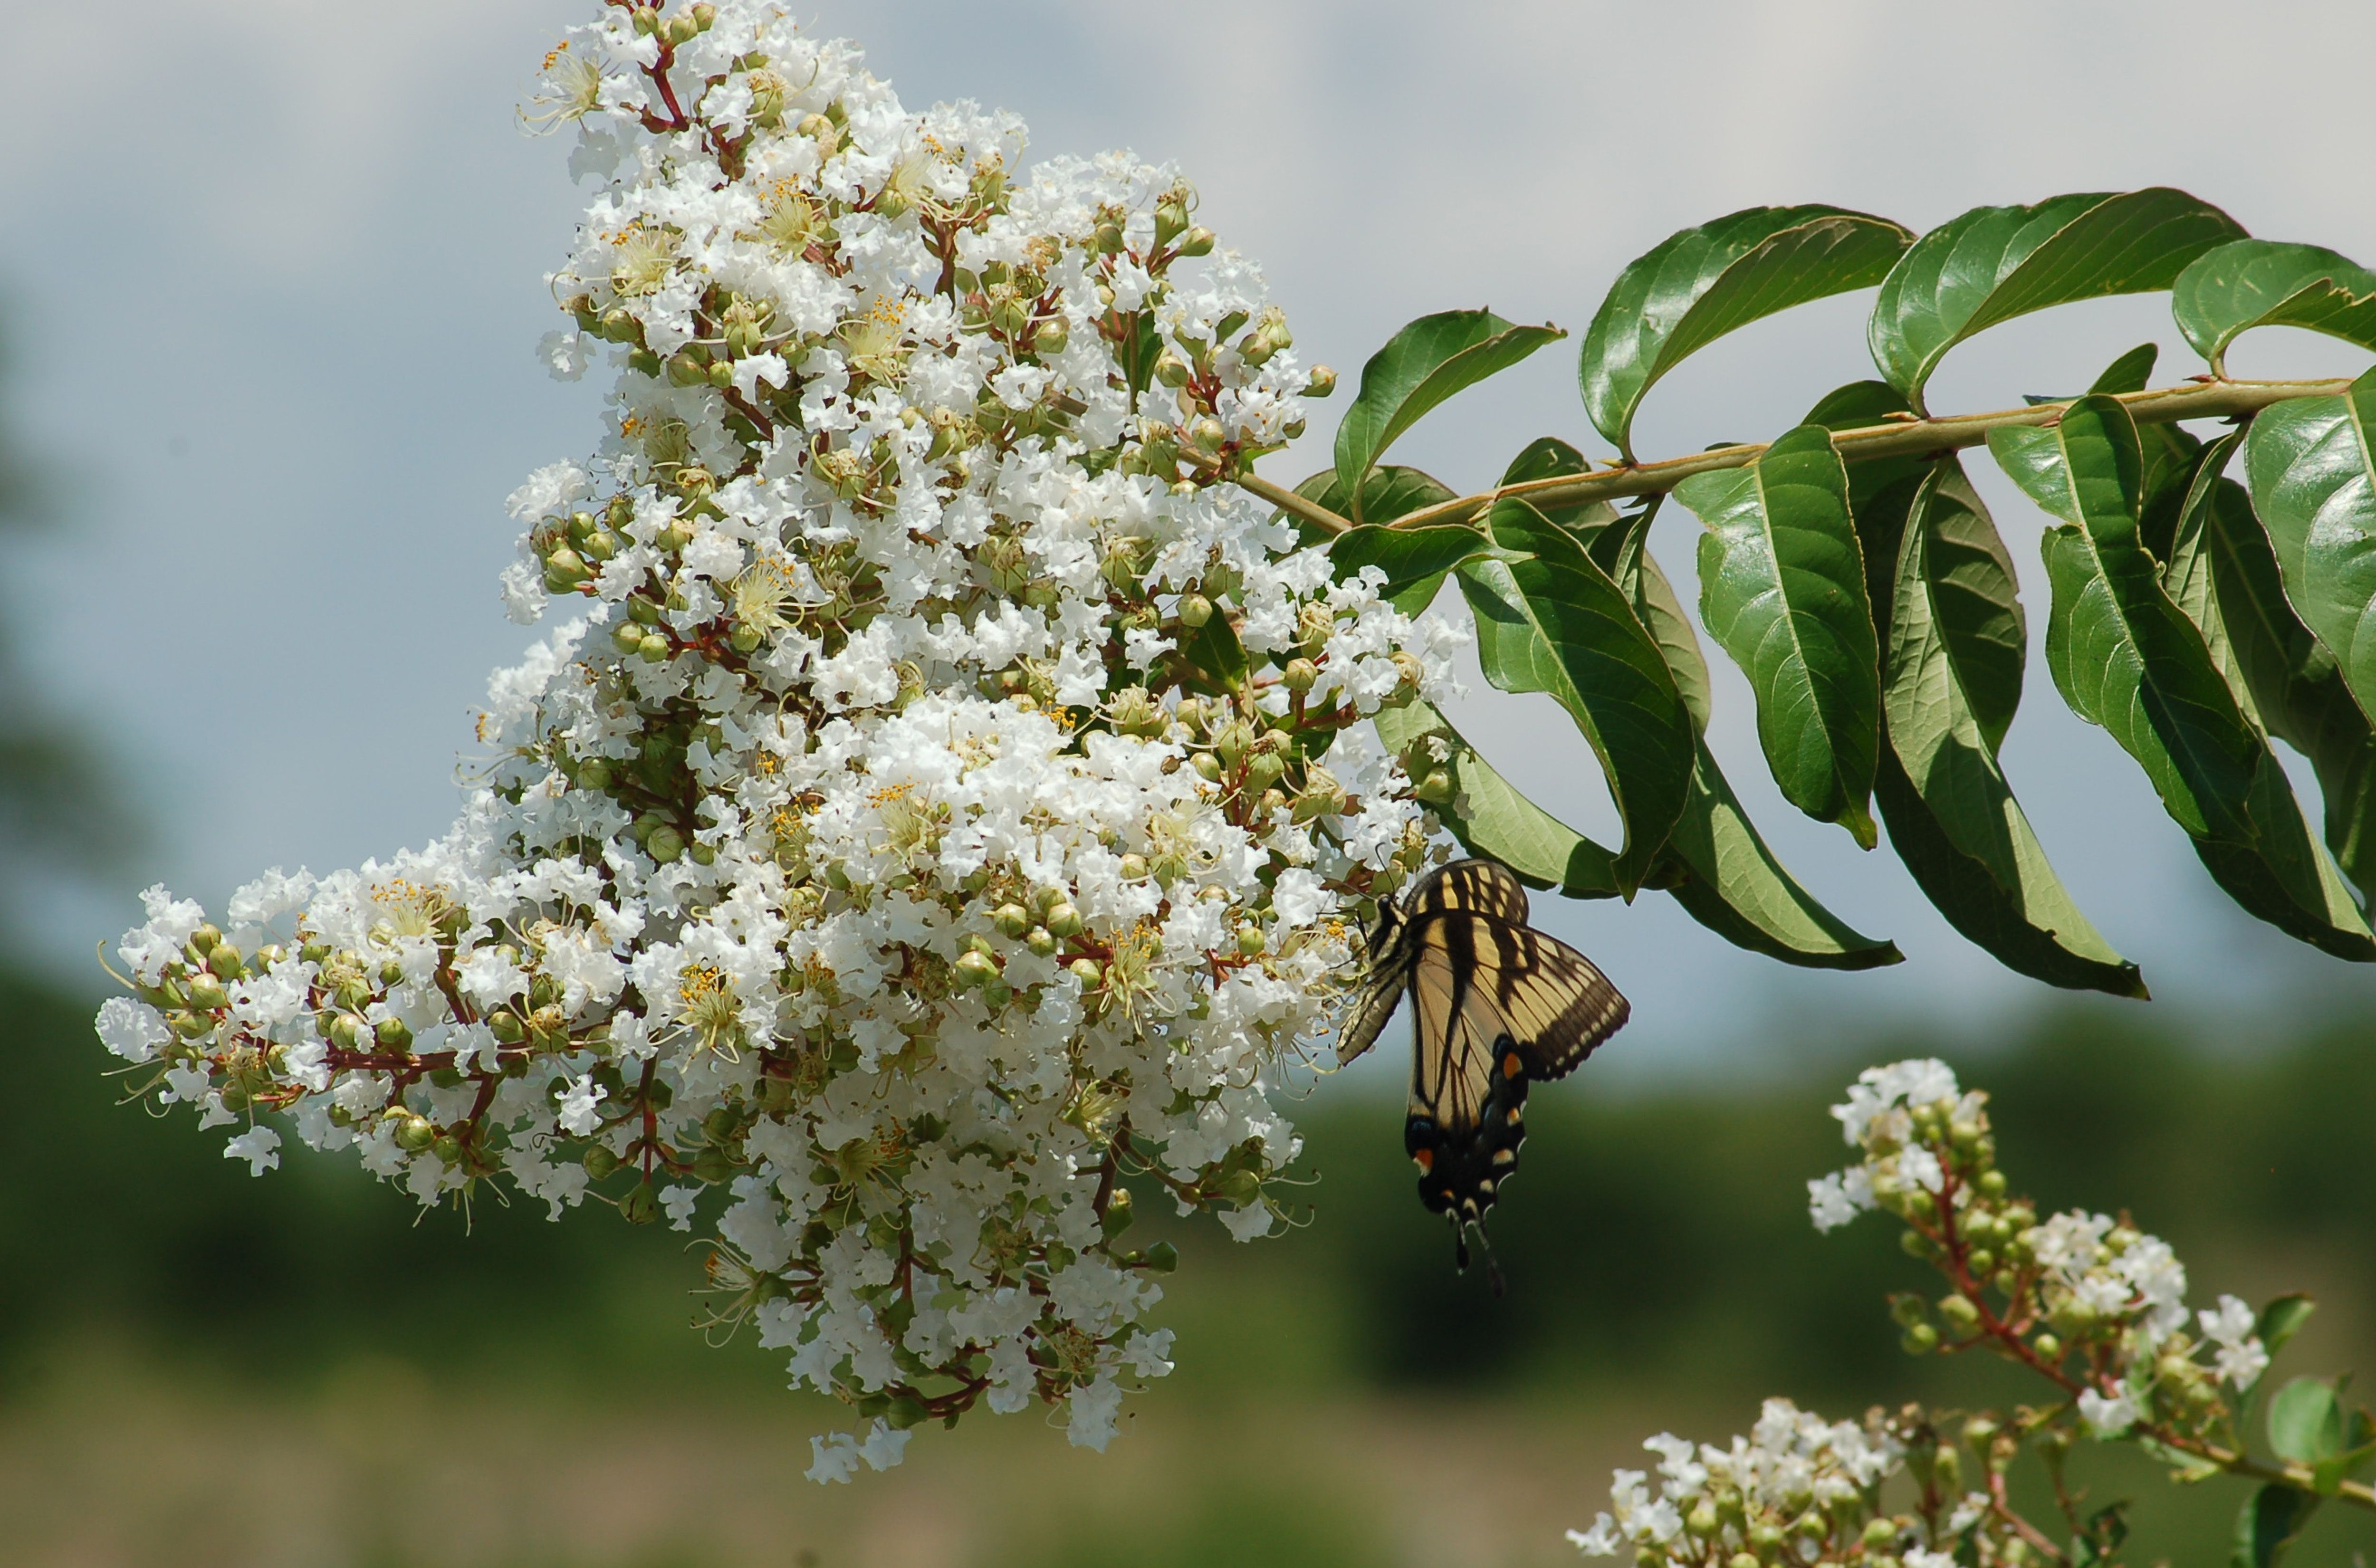 A tiger swallowtail butterfly drinks at the font of a white-flowering crepe myrtle bush.